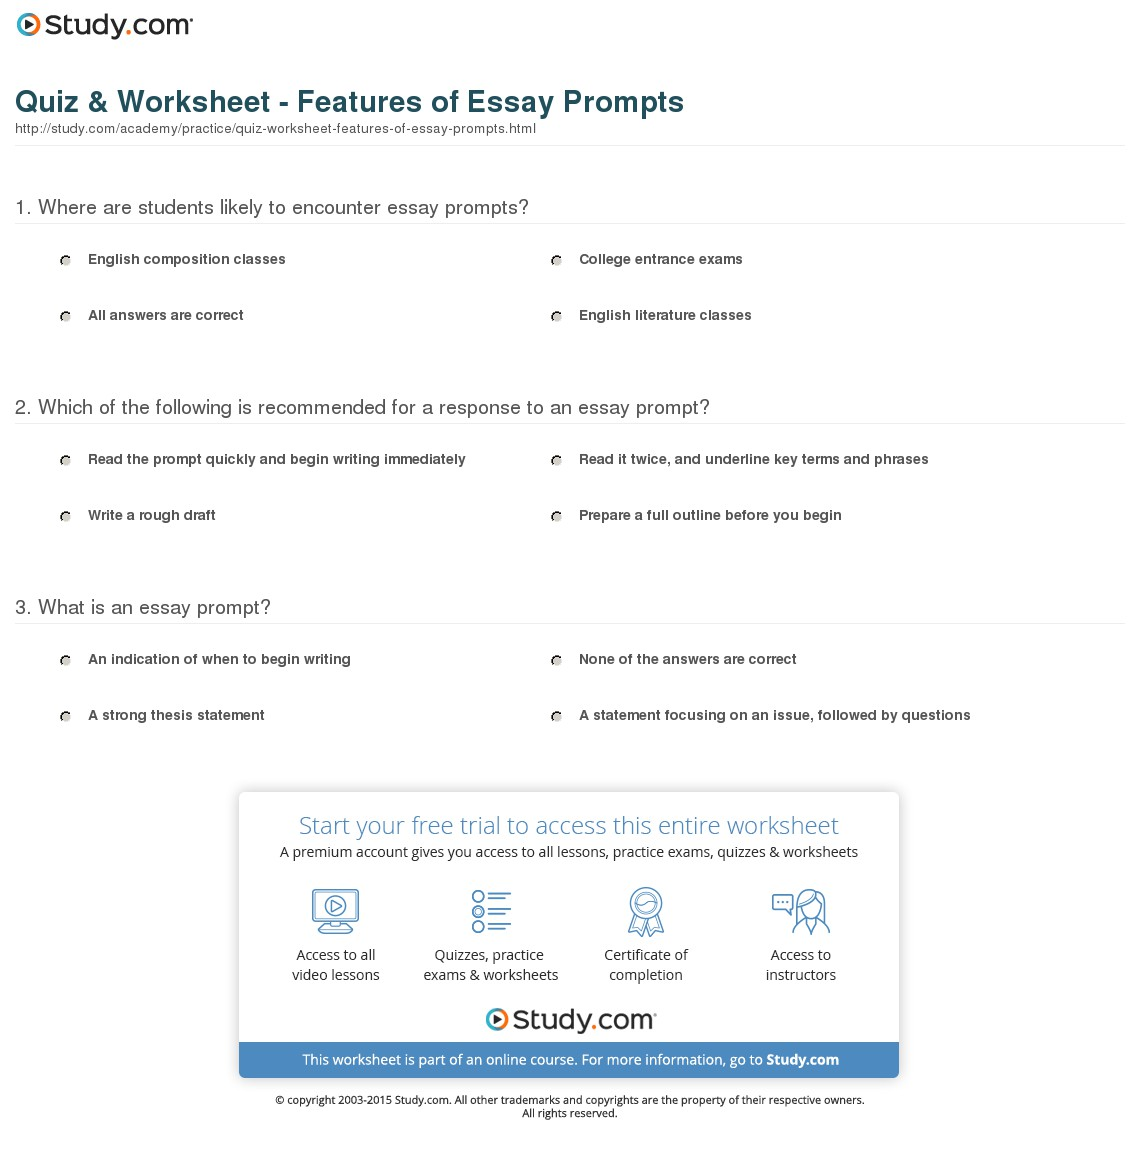 002 Essay Example Prompt Definition Quiz Worksheet Features Of Fascinating Full